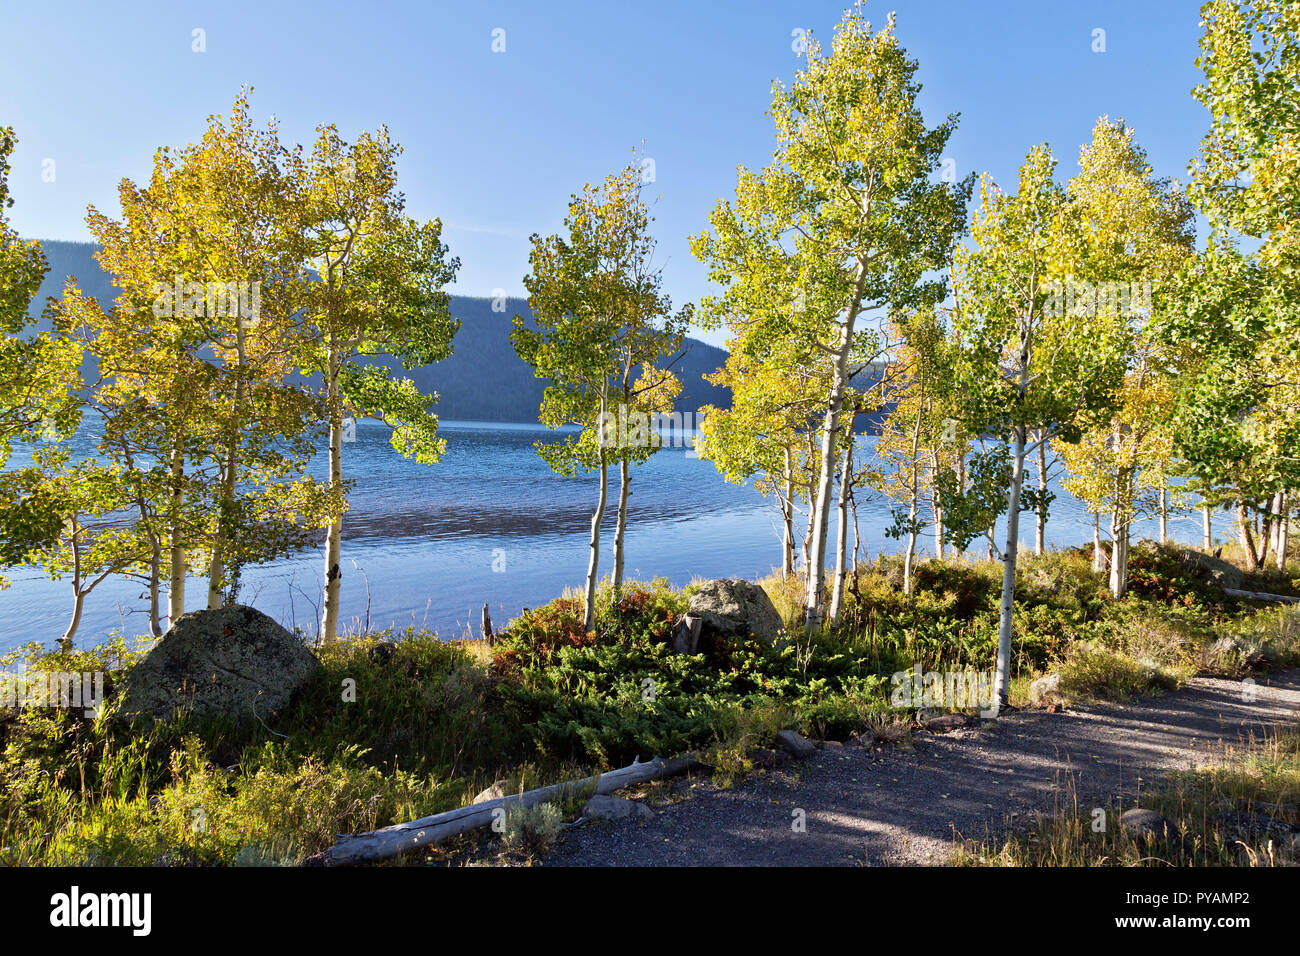 Quaking Aspen Grove 'Pando Clone' also known as Tembling Giant.  Clonal colony. - Stock Image